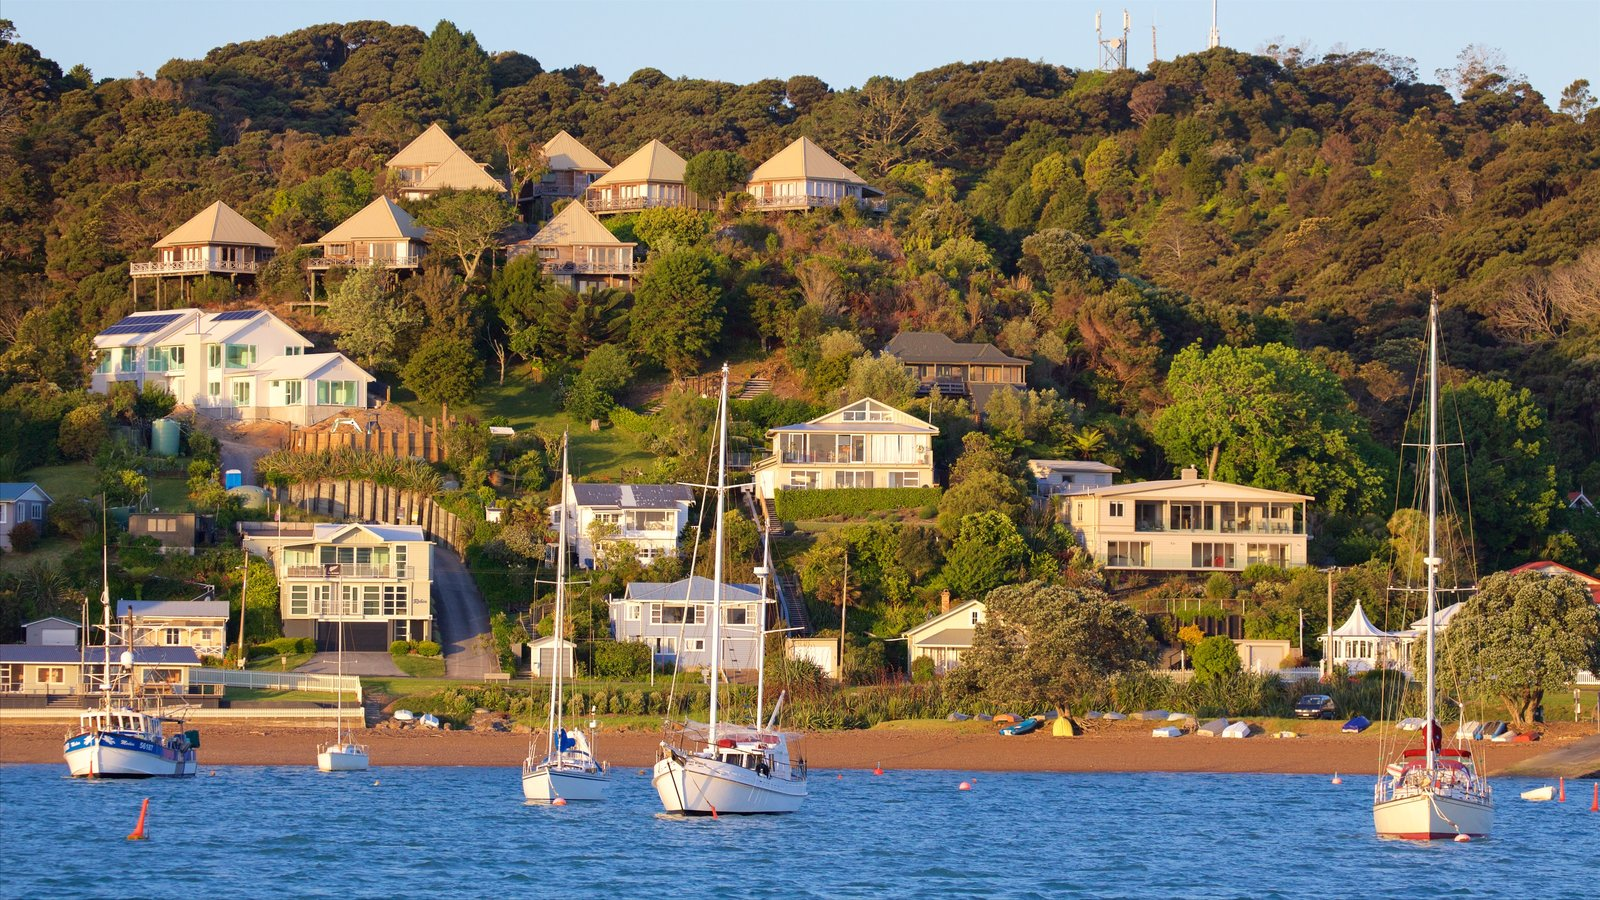 Russell which includes a coastal town, a sandy beach and a bay or harbor